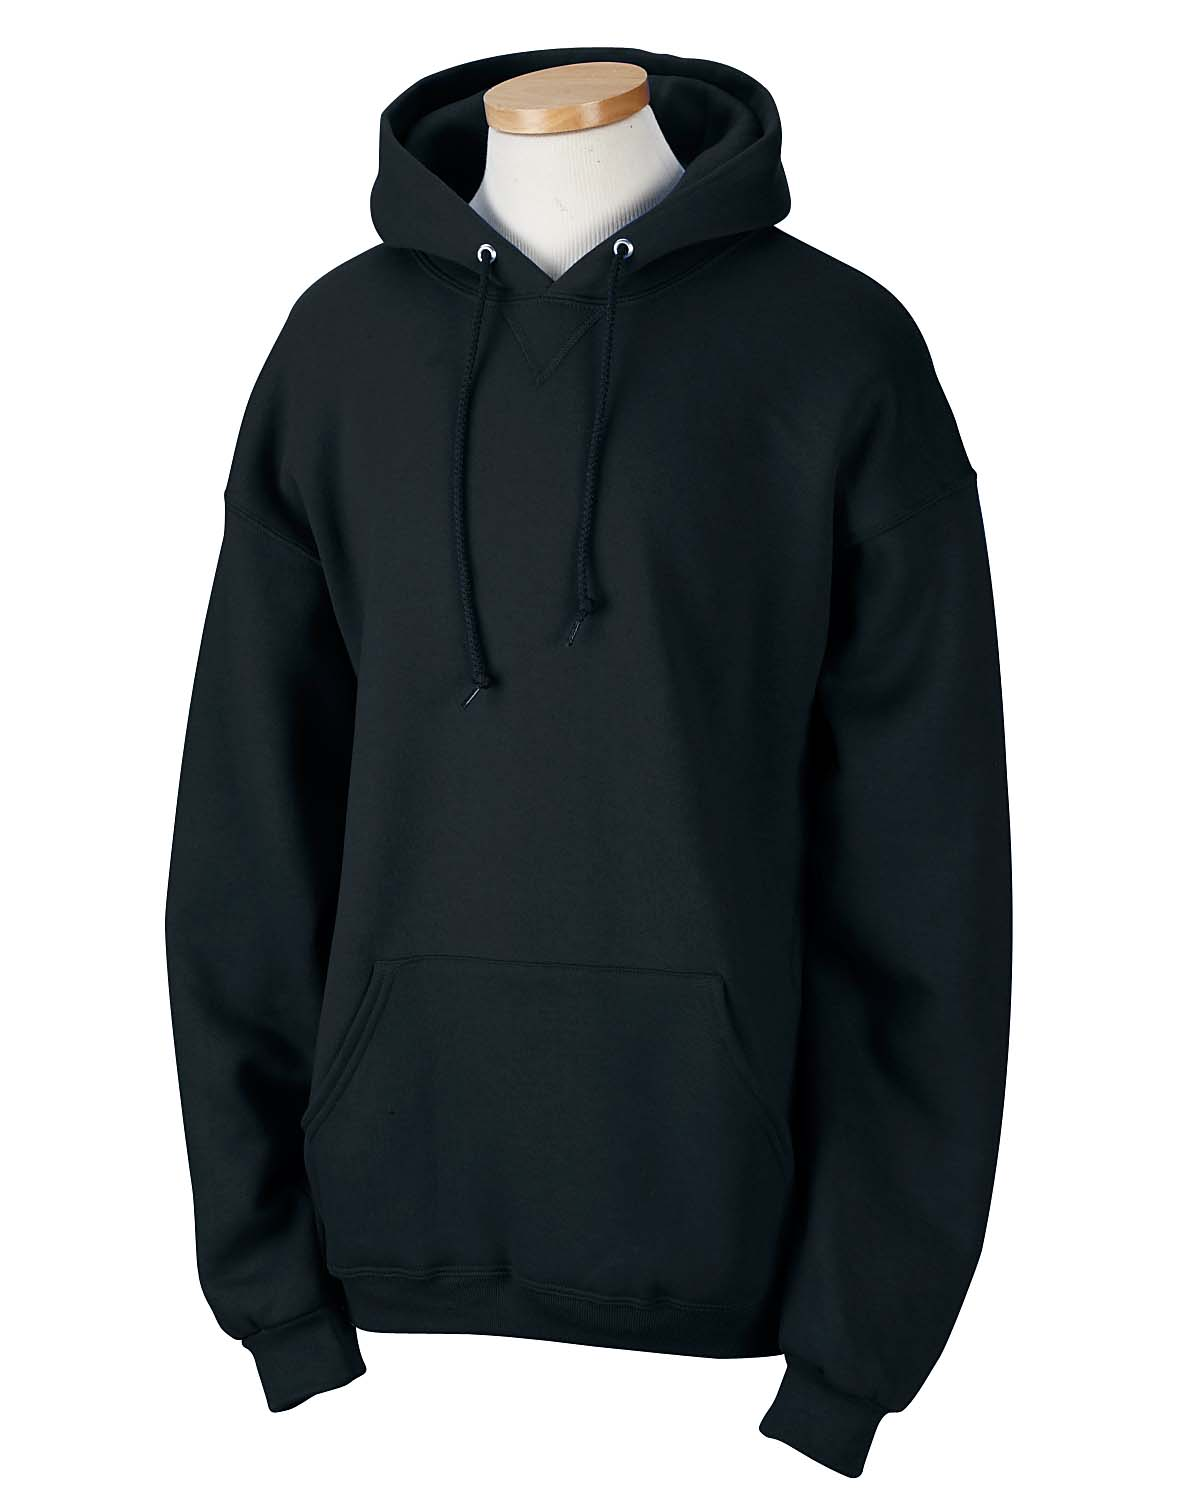 Collection Black Hoodie Men Pictures - Reikian